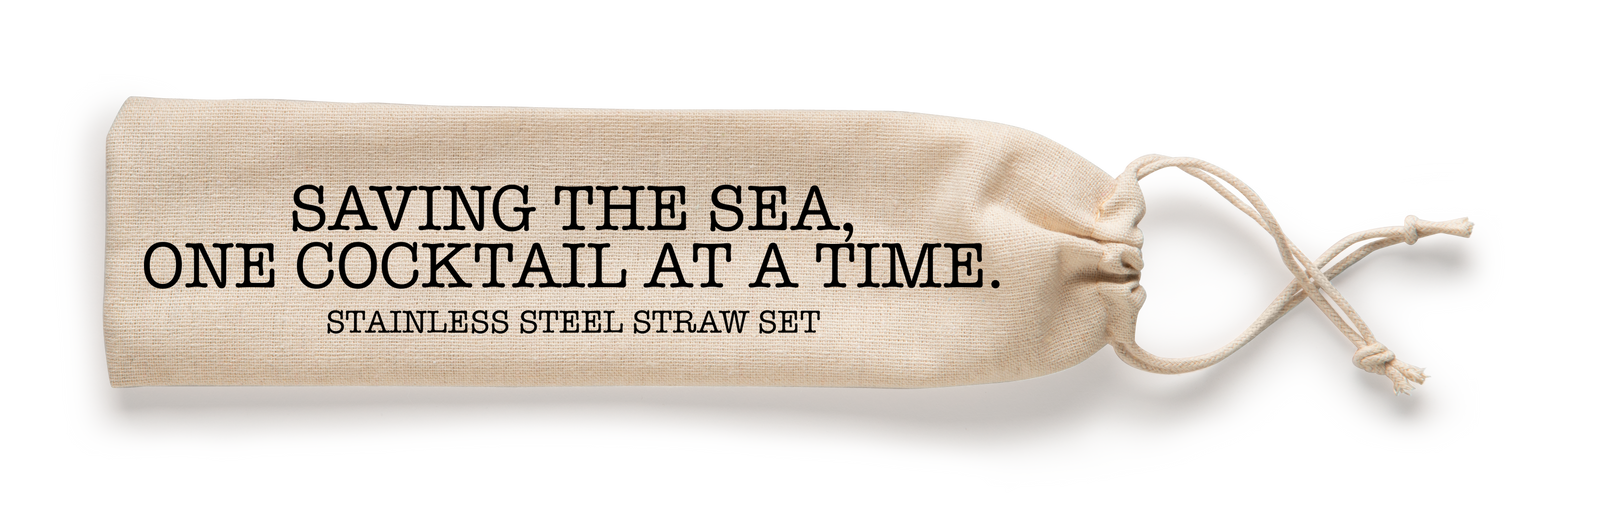 Saving the Sea One Cocktail at a Time Reusable Stainless Steel Straw Set